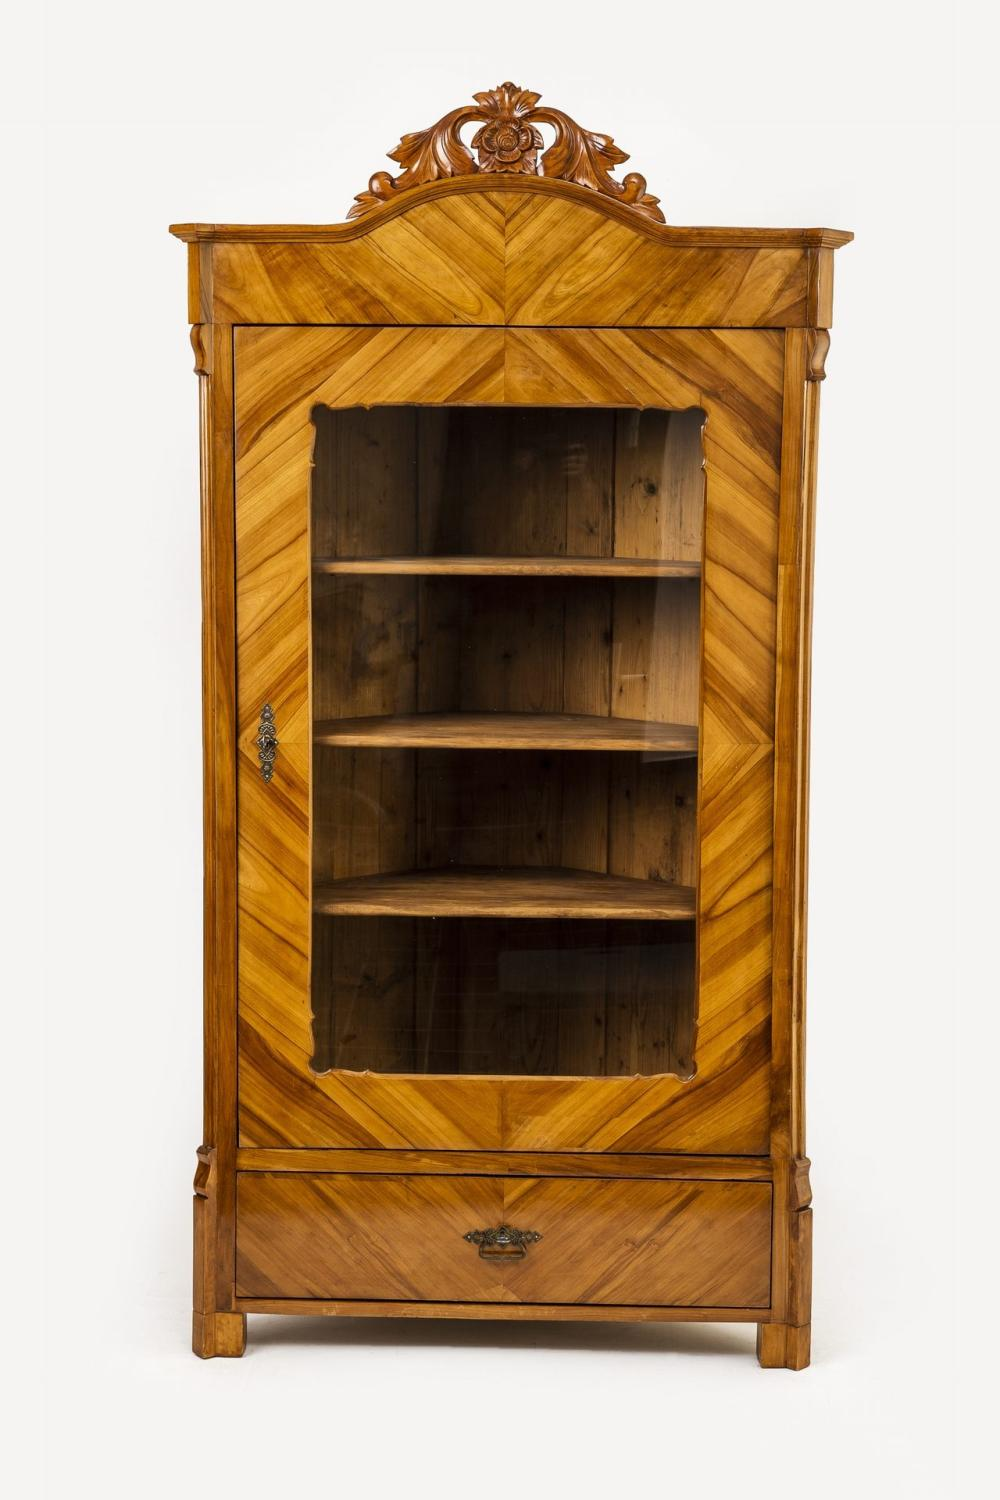 Eckvitrine Kirschbaum Bid Now: Biedermeier-eckvitrine - April 5, 0121 5:00 Pm Cest